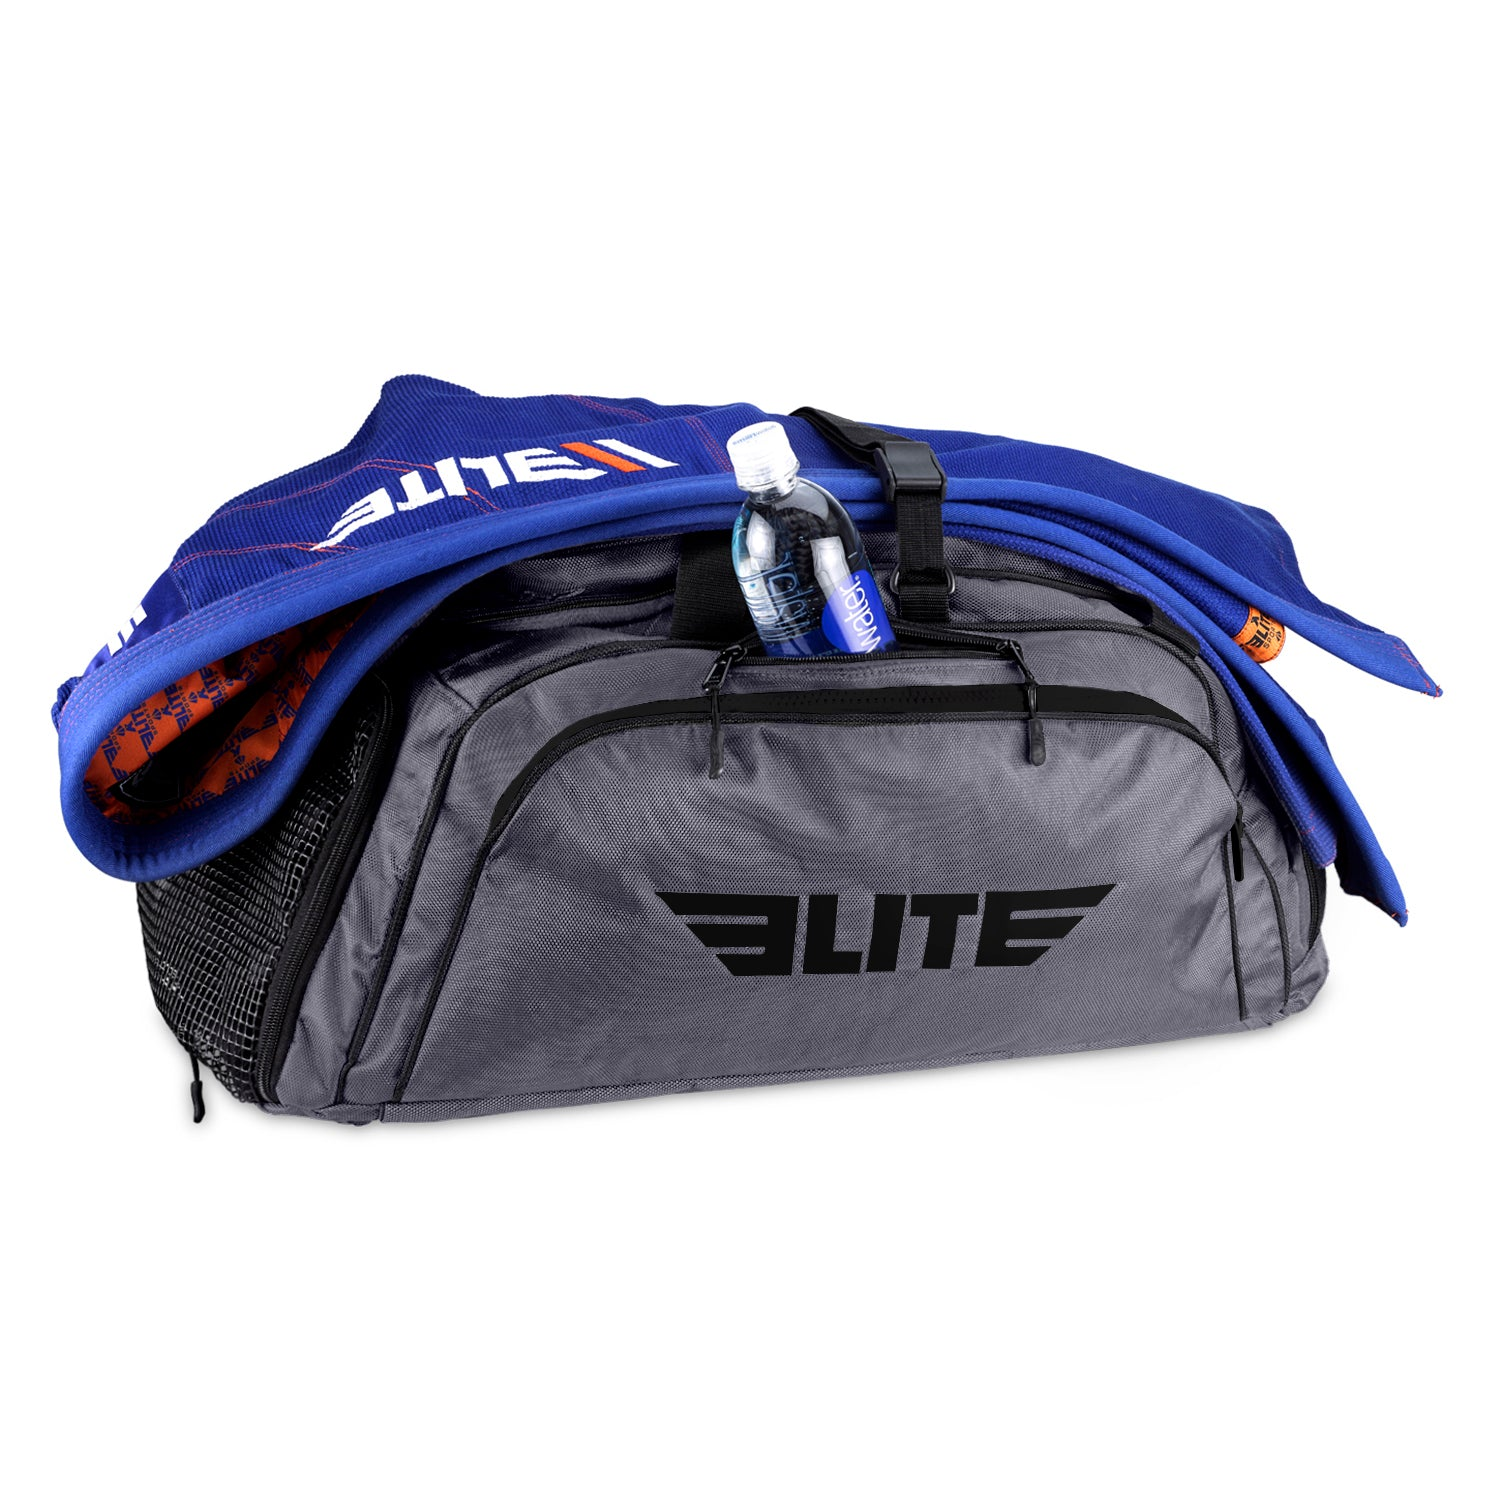 Load image into Gallery viewer, Elite Sports Warrior Series Gray Large Duffel Karate Gear Gym Bag & Backpack